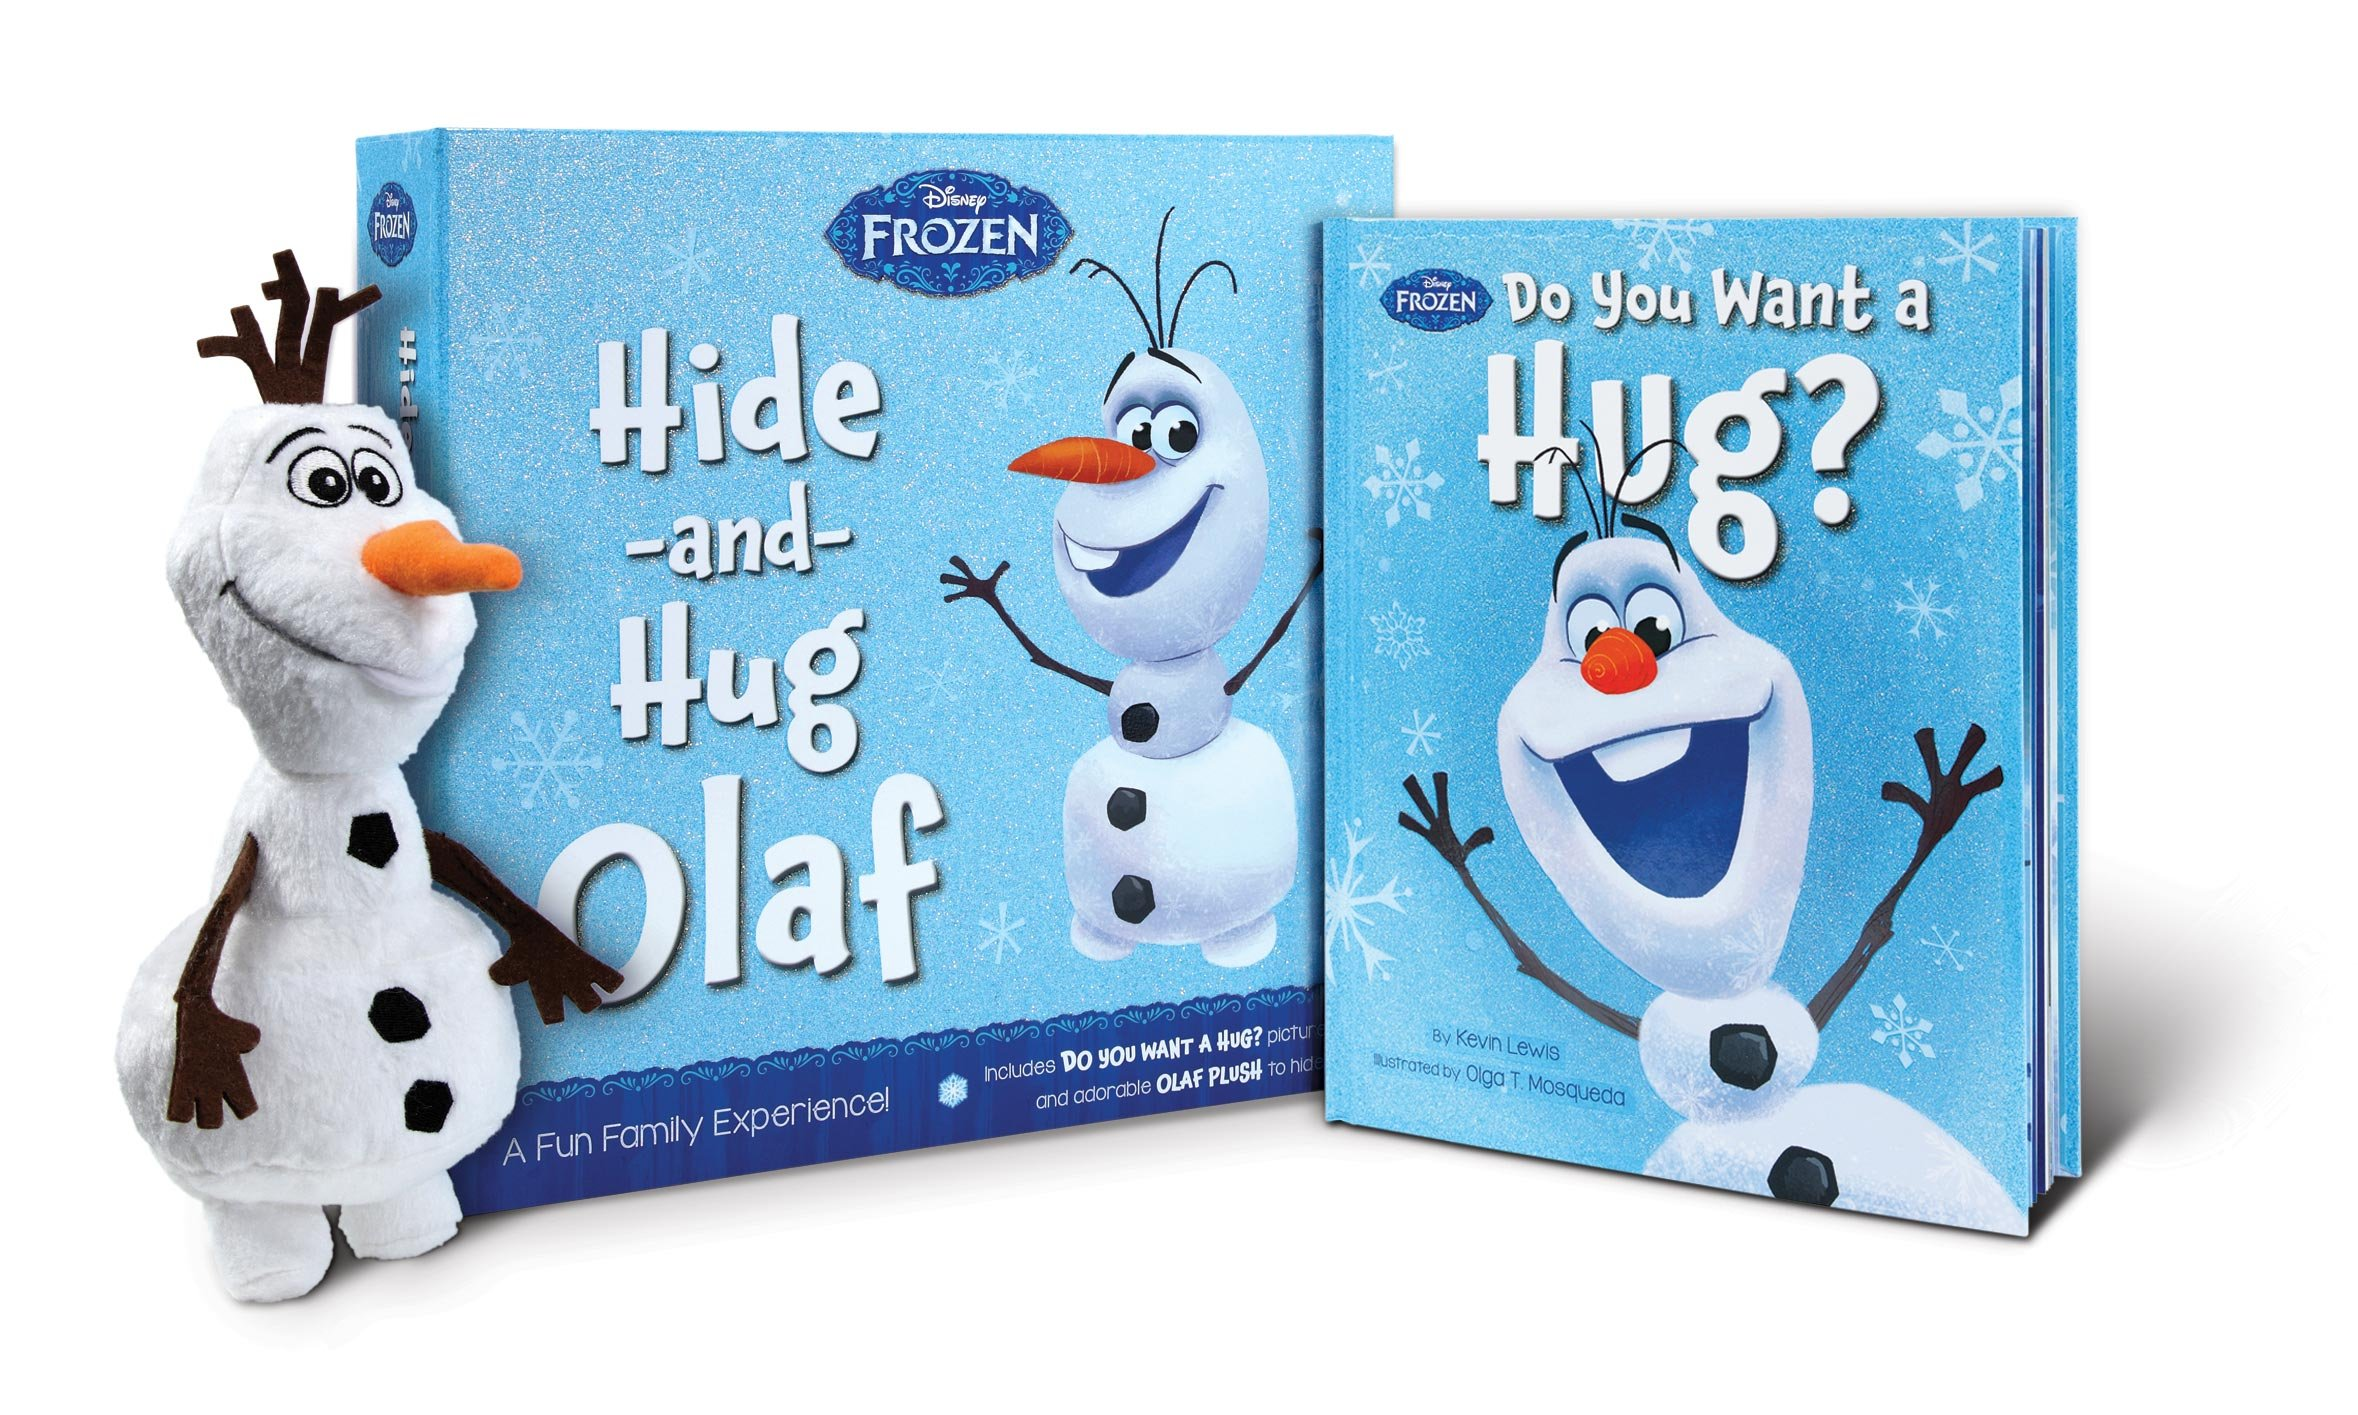 Frozen Hide-and-Hug Olaf: A Fun Family Experience!: Kevin Lewis ...